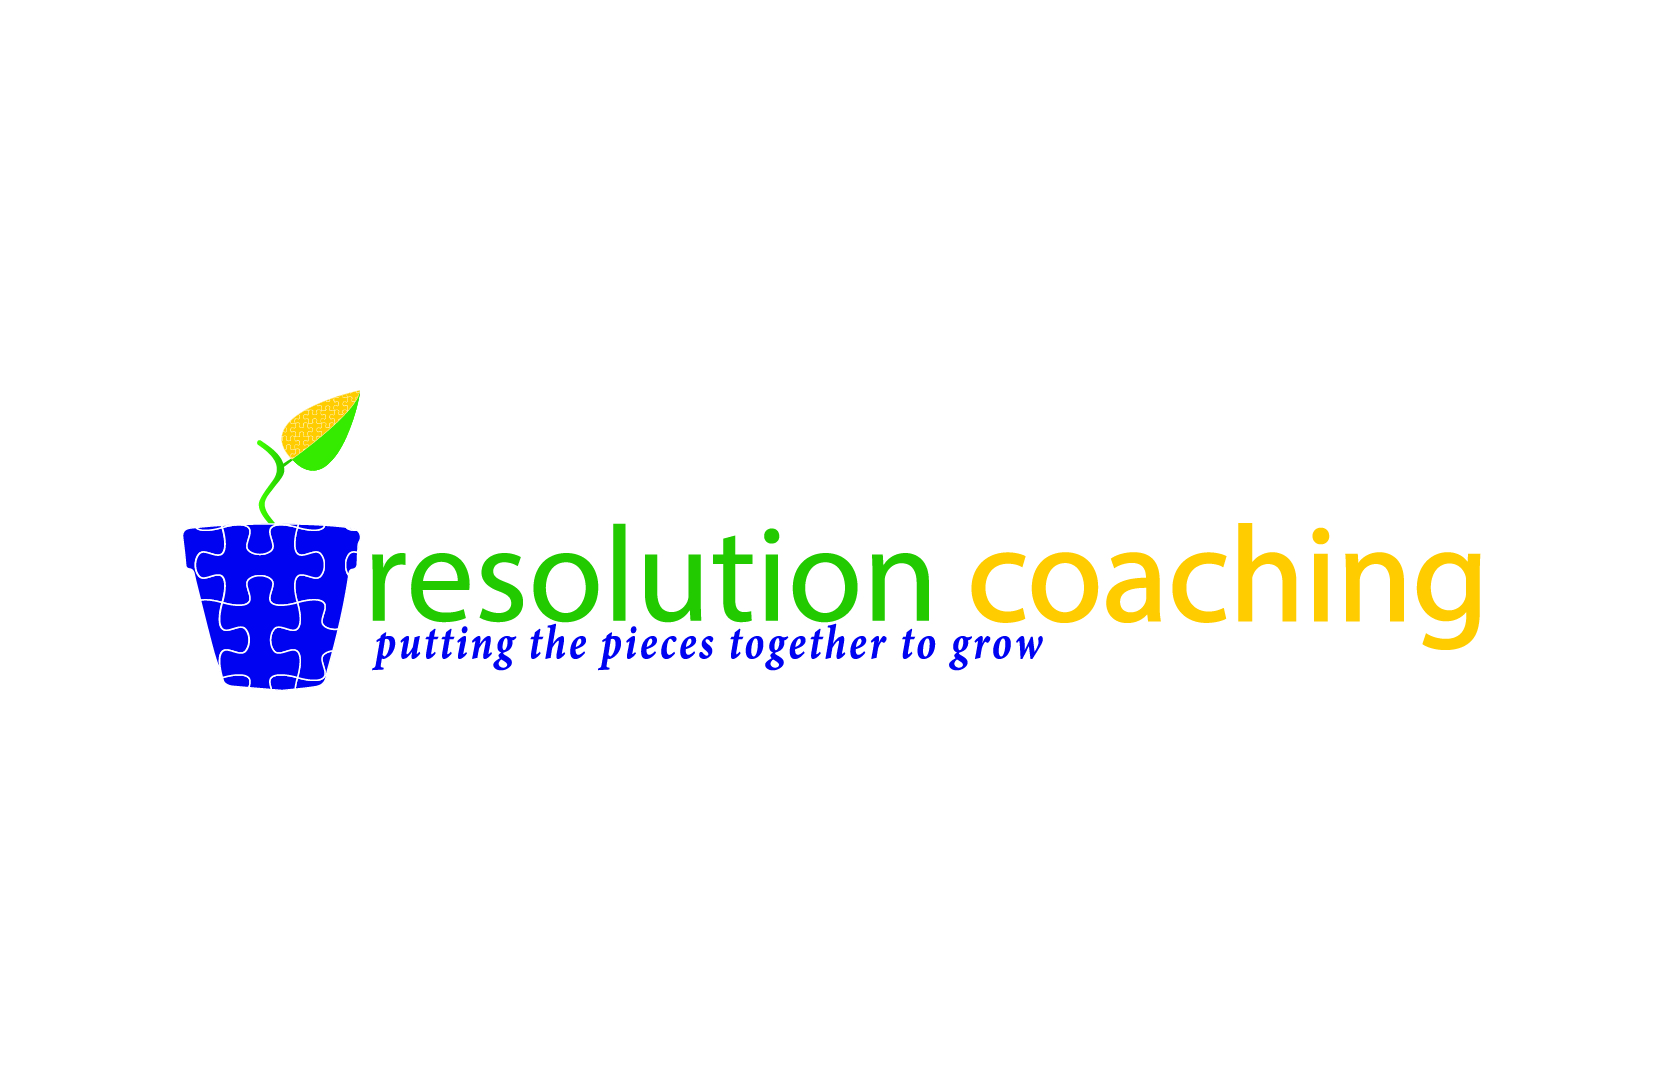 Resolution Coaching